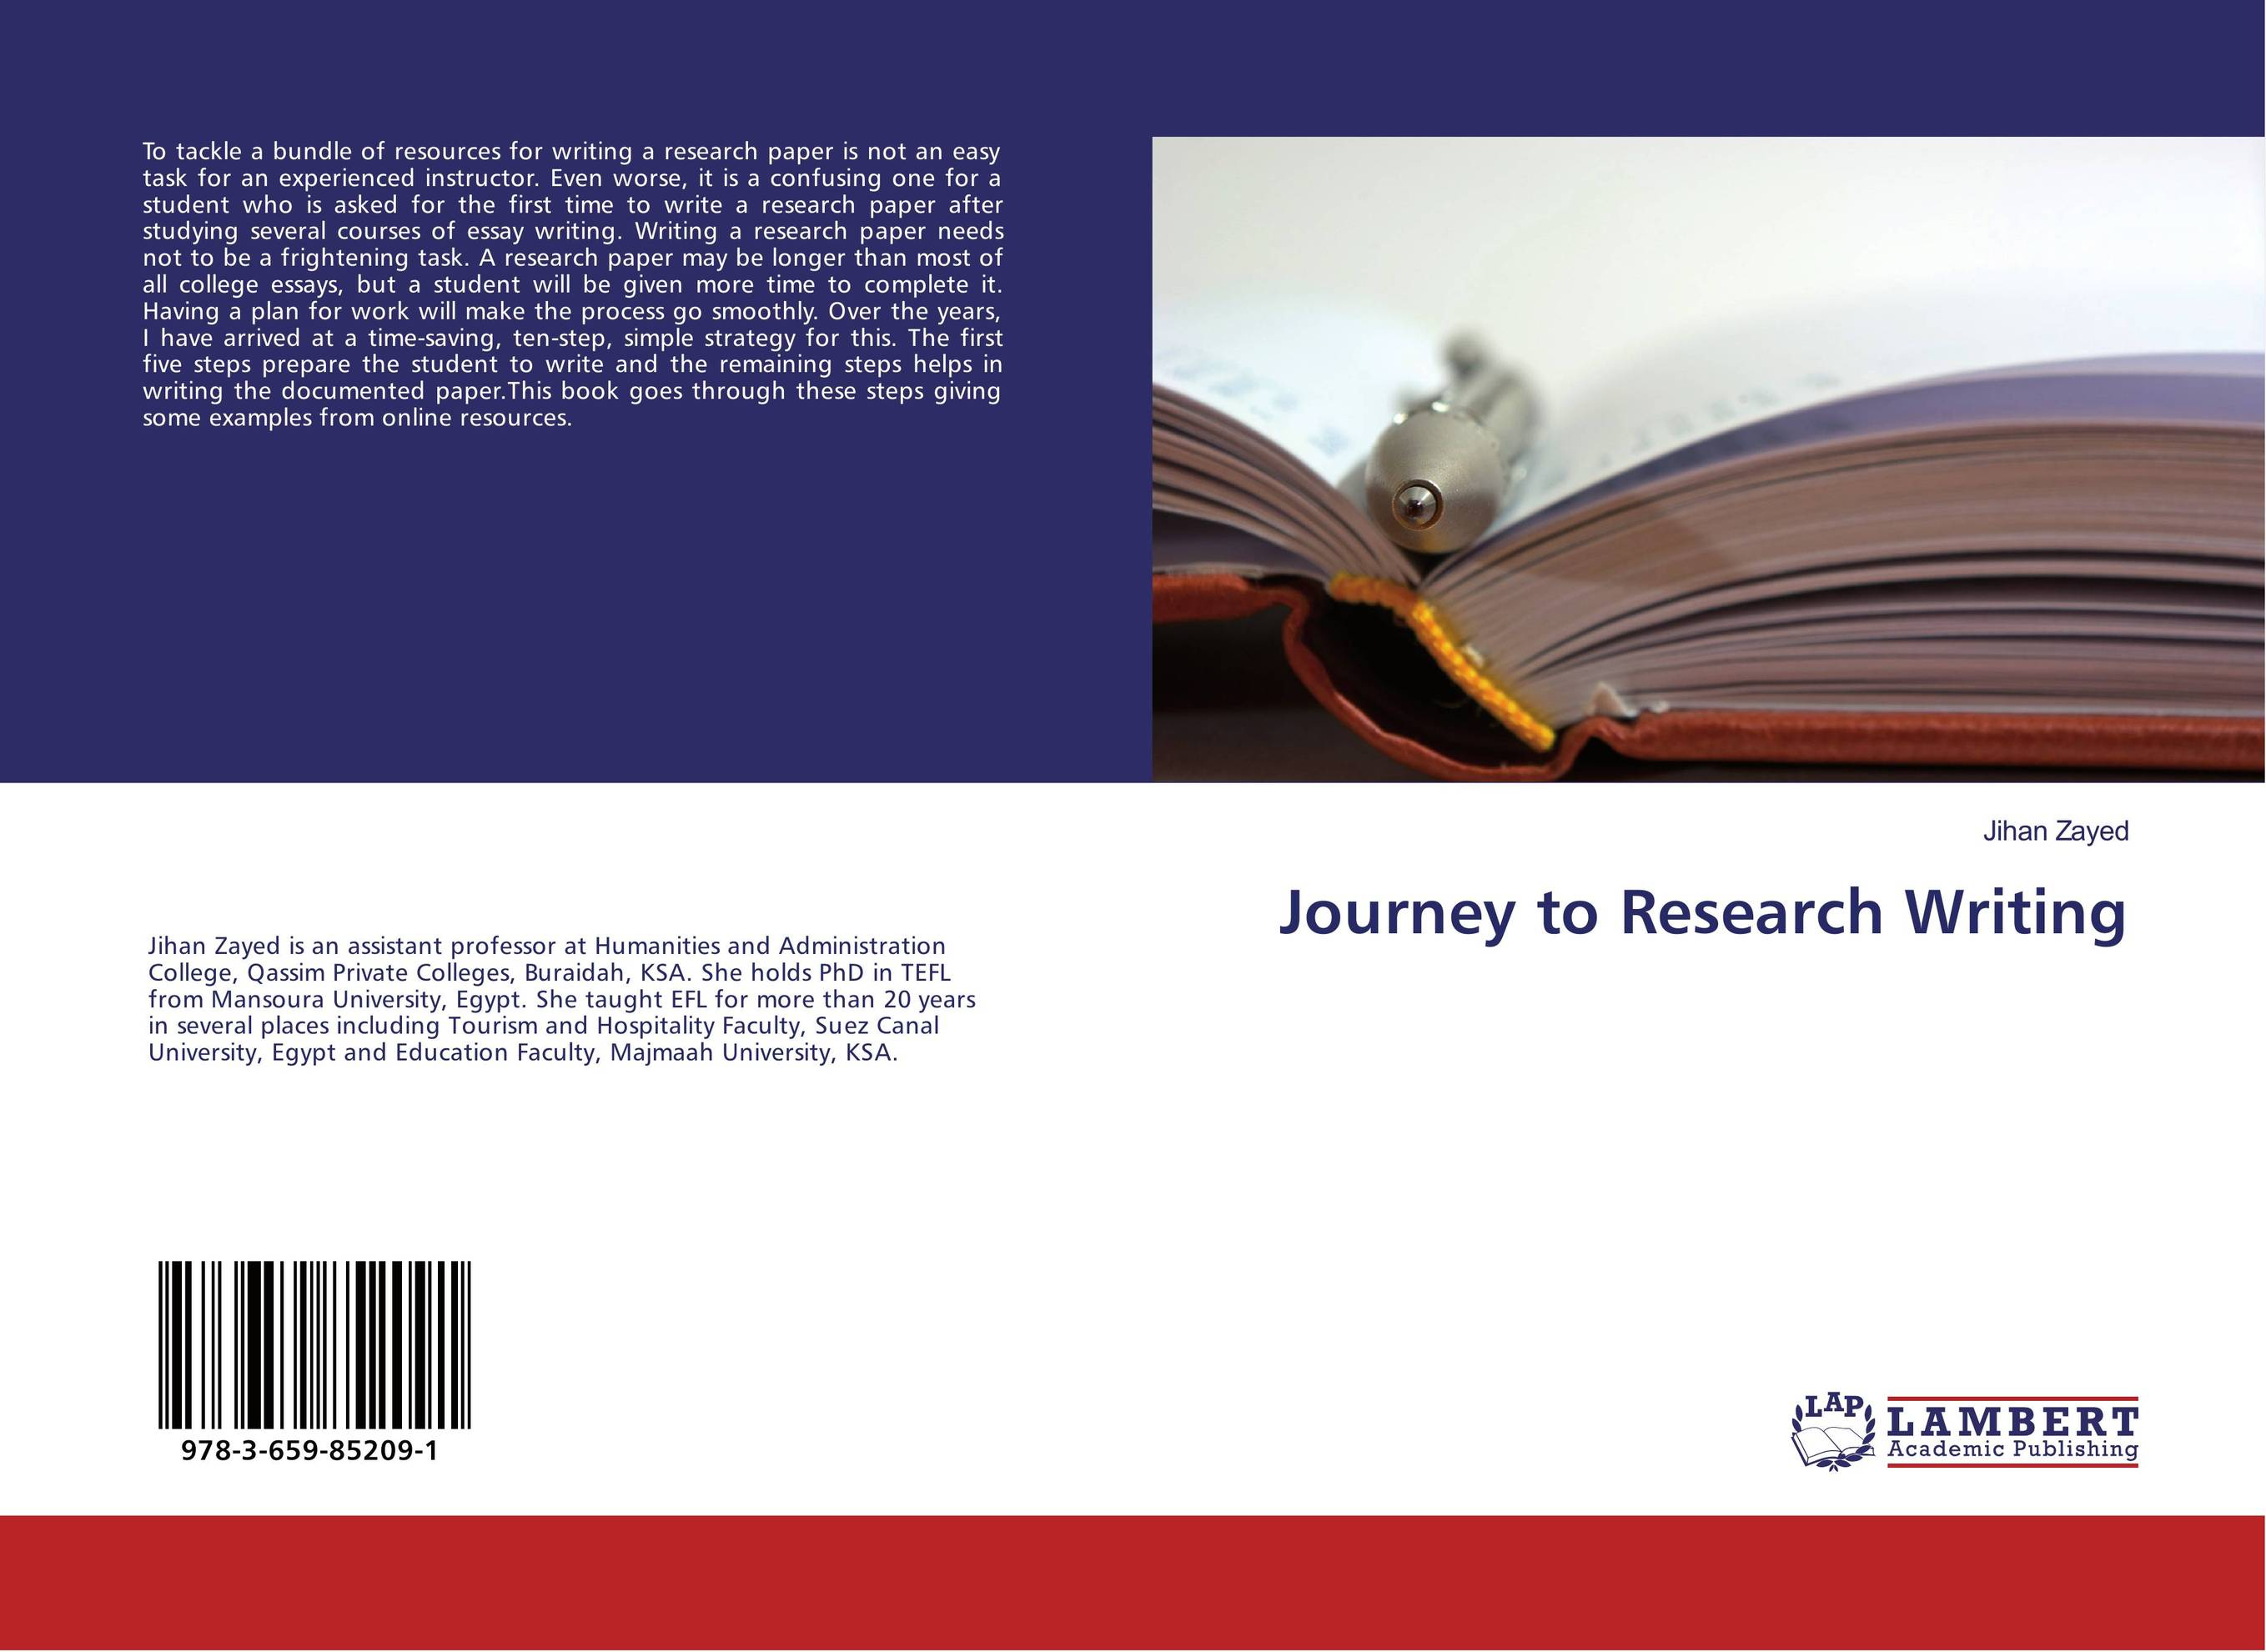 Journey to Research Writing